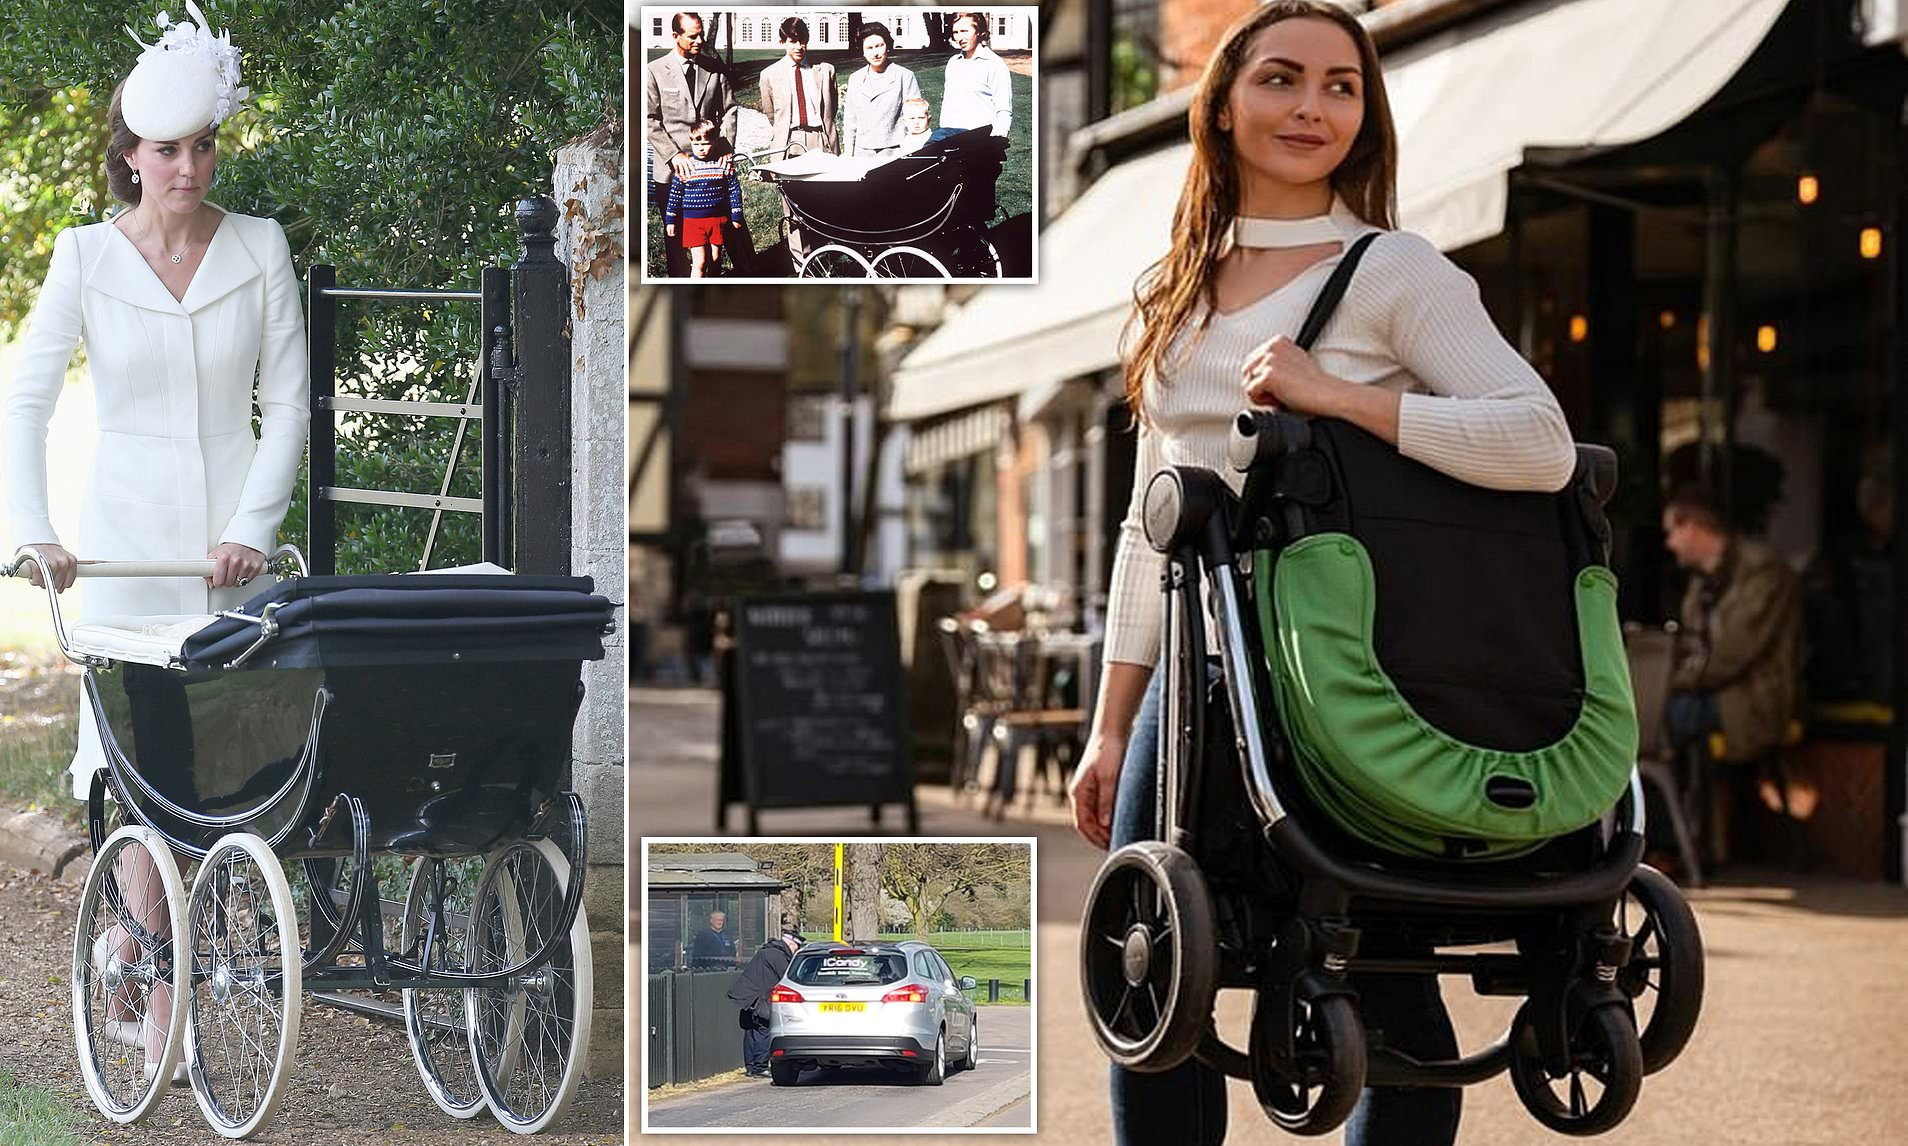 Travel Trio Musical Pram Tie Trendy Pram Makers Icandy Arrive At Frogmore Estate Amid